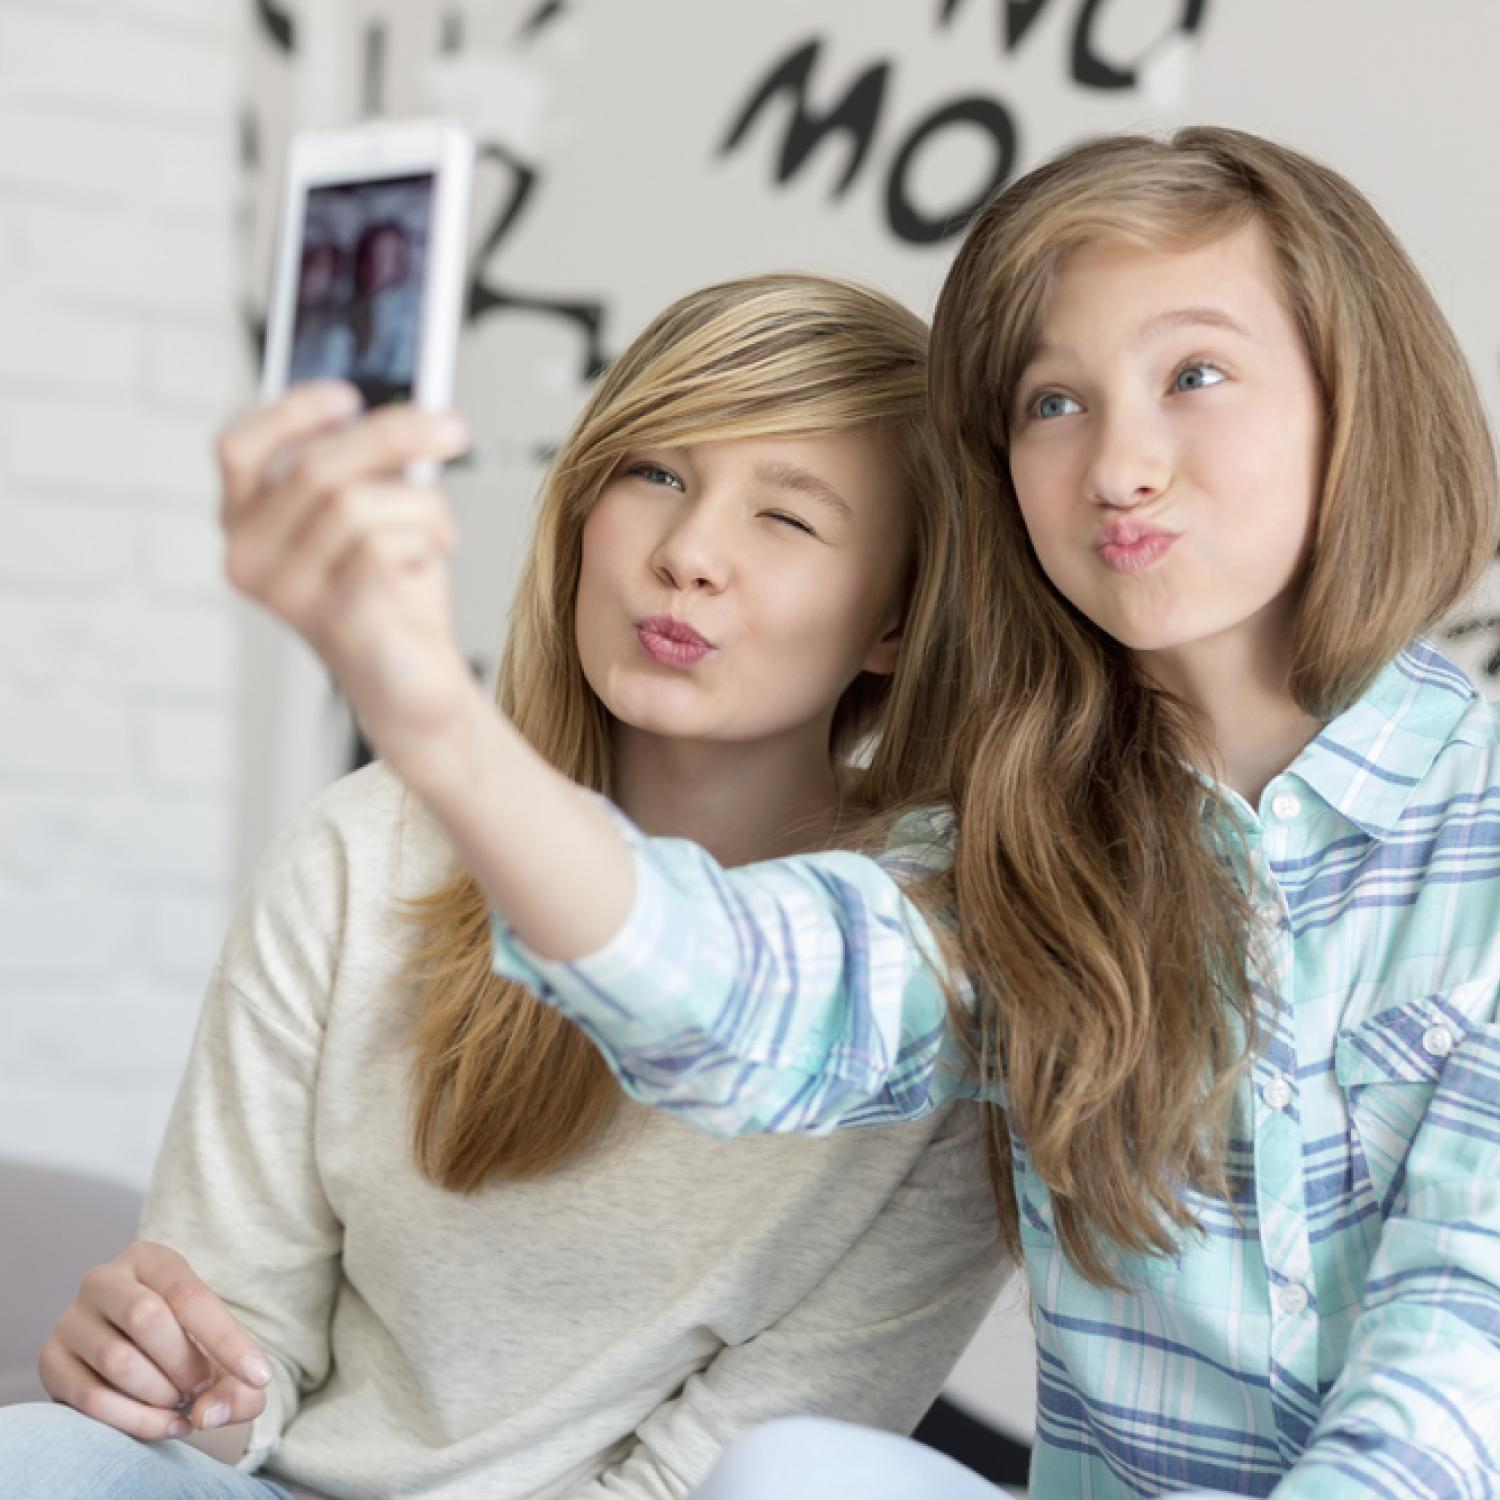 Young women with 'sexy' social media photos perceived as ...